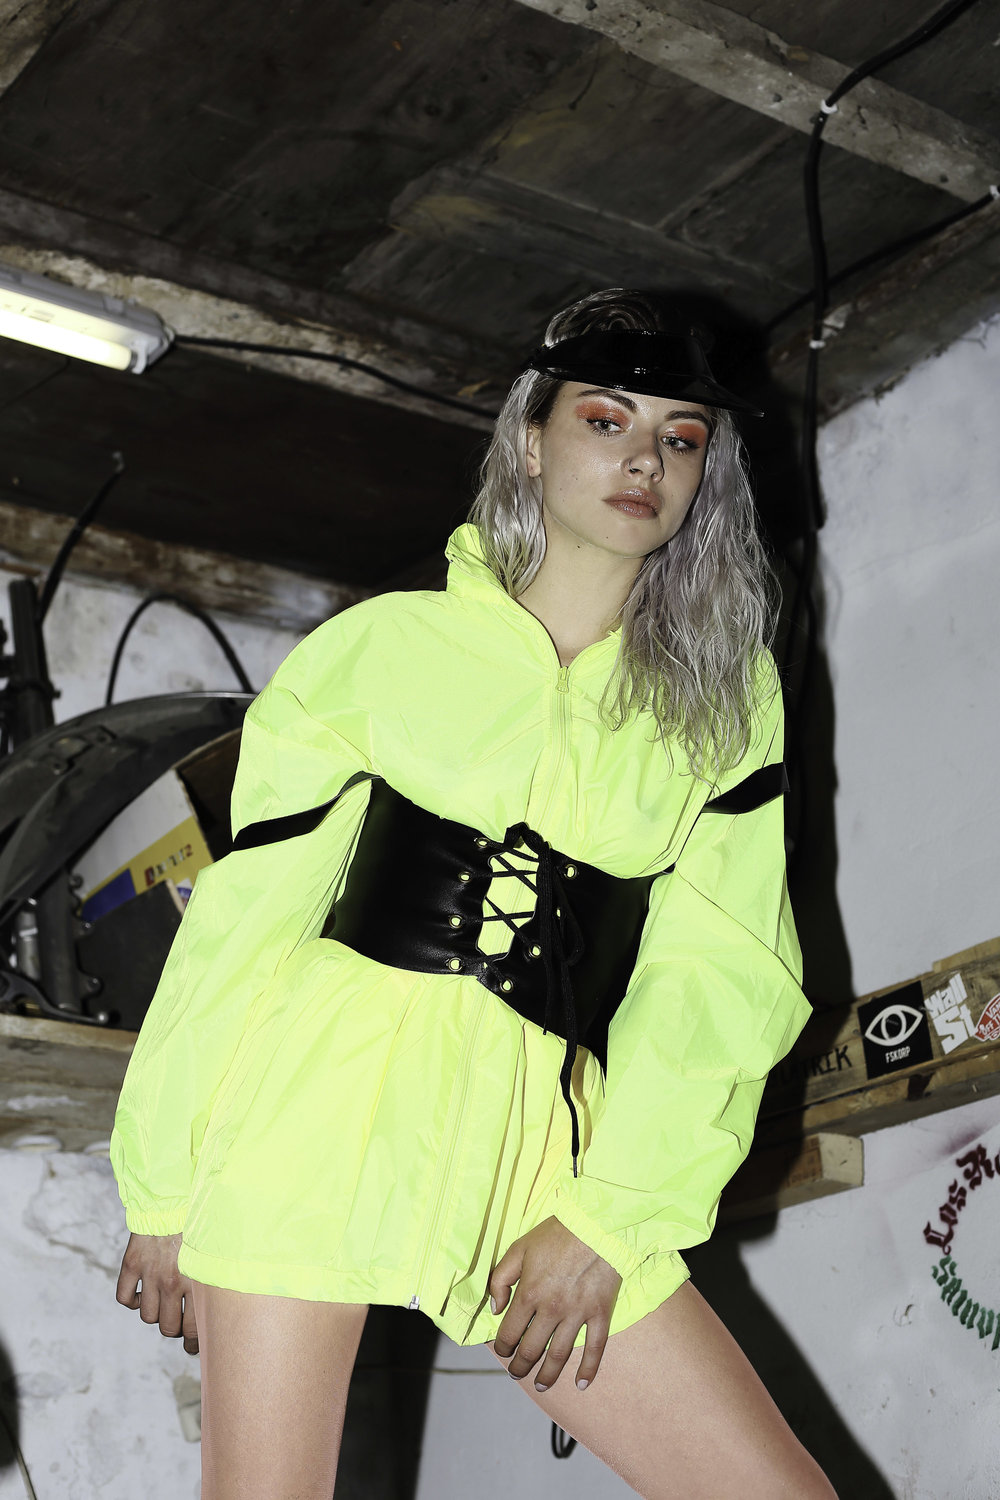 Reclaimed Vintage Inspired trench, Stylist's own corset, Falke tights, Christian Lacroix visor